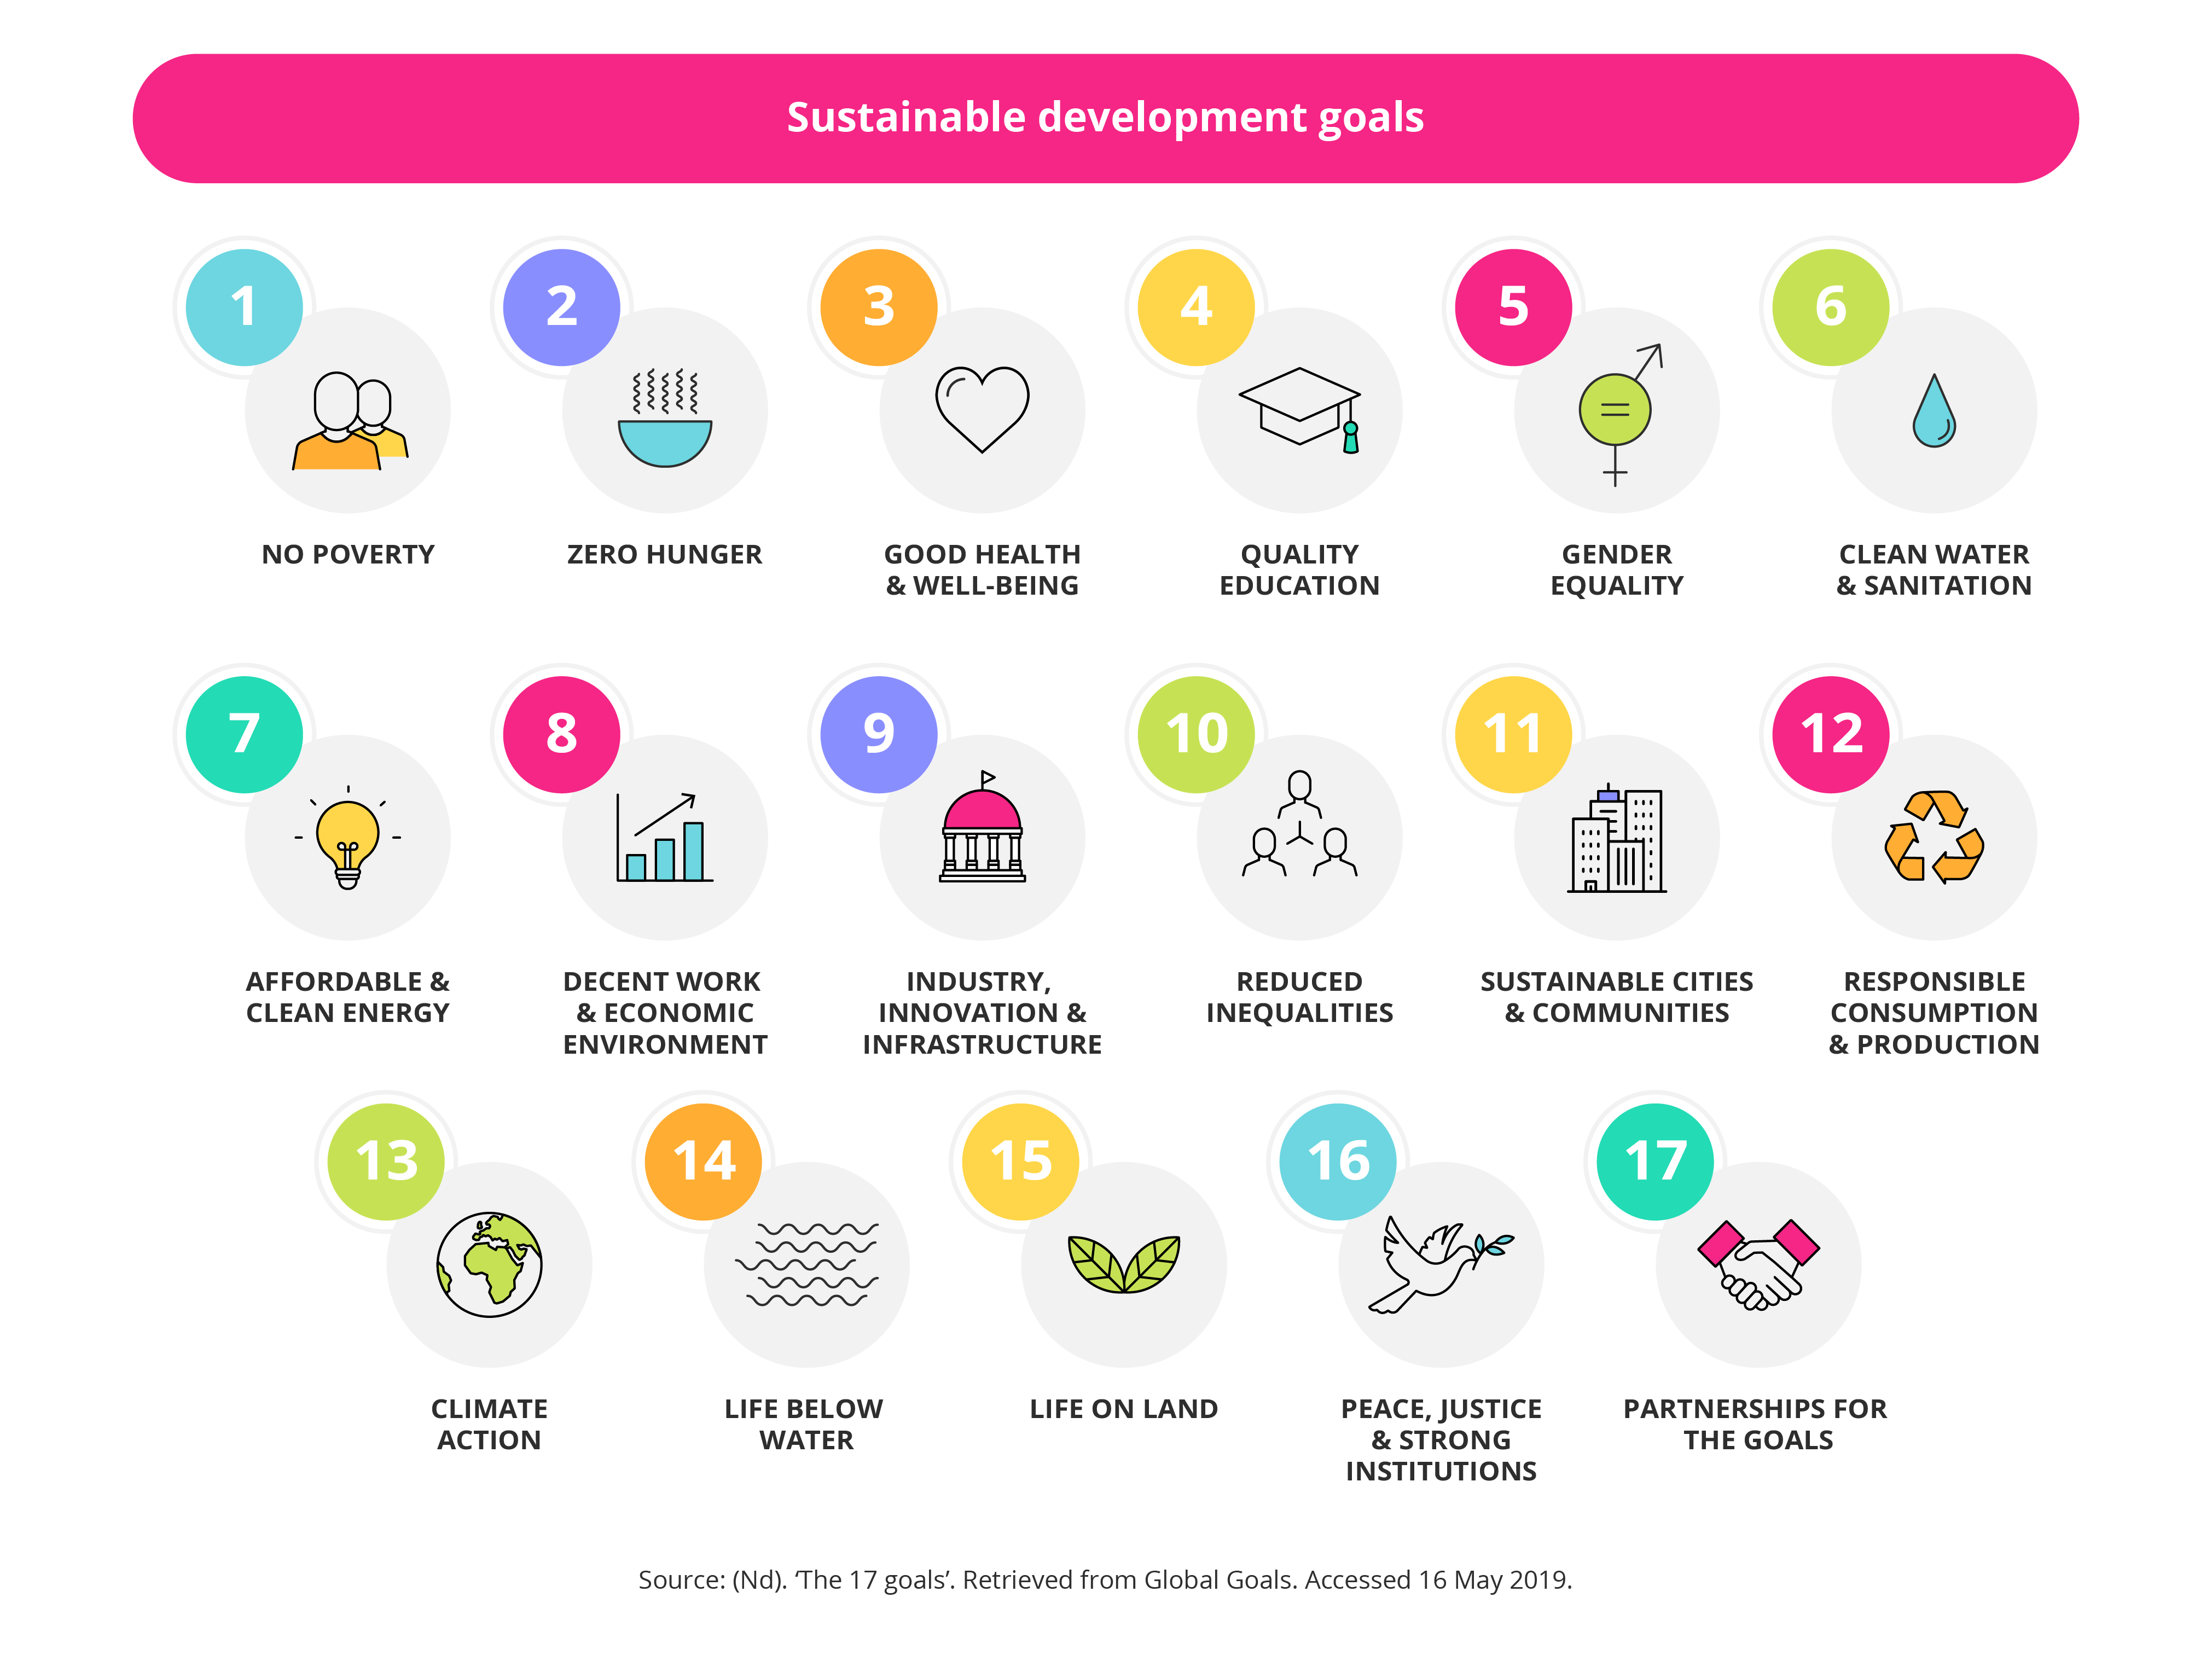 Goals for sustainable development in business